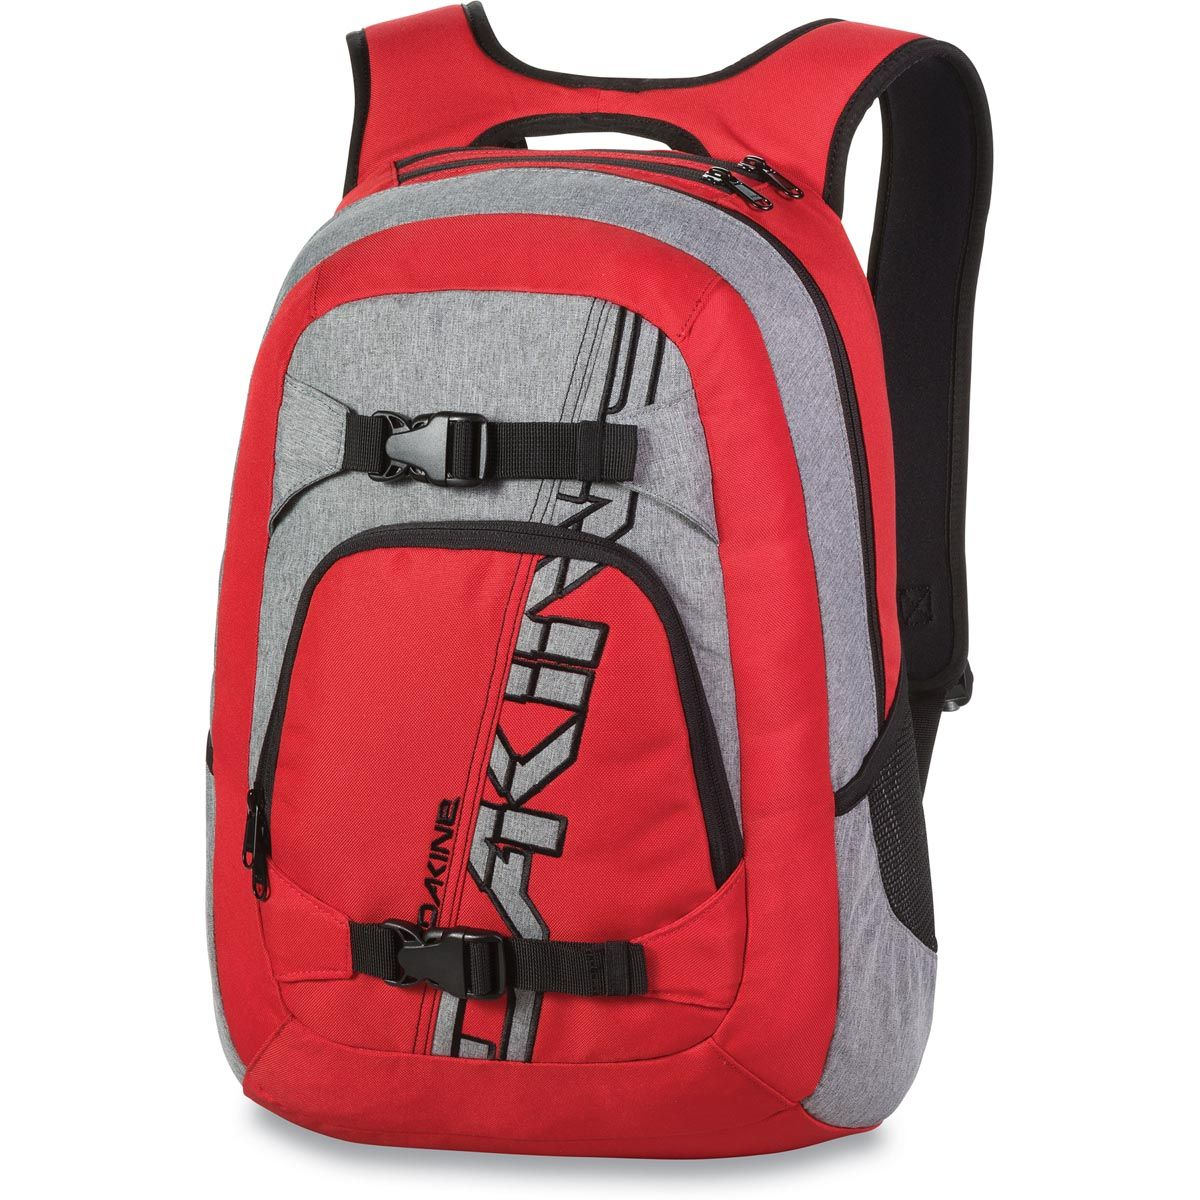 98d08a38365d6 Dakine Explorer 26L Red Laptop Rucksack